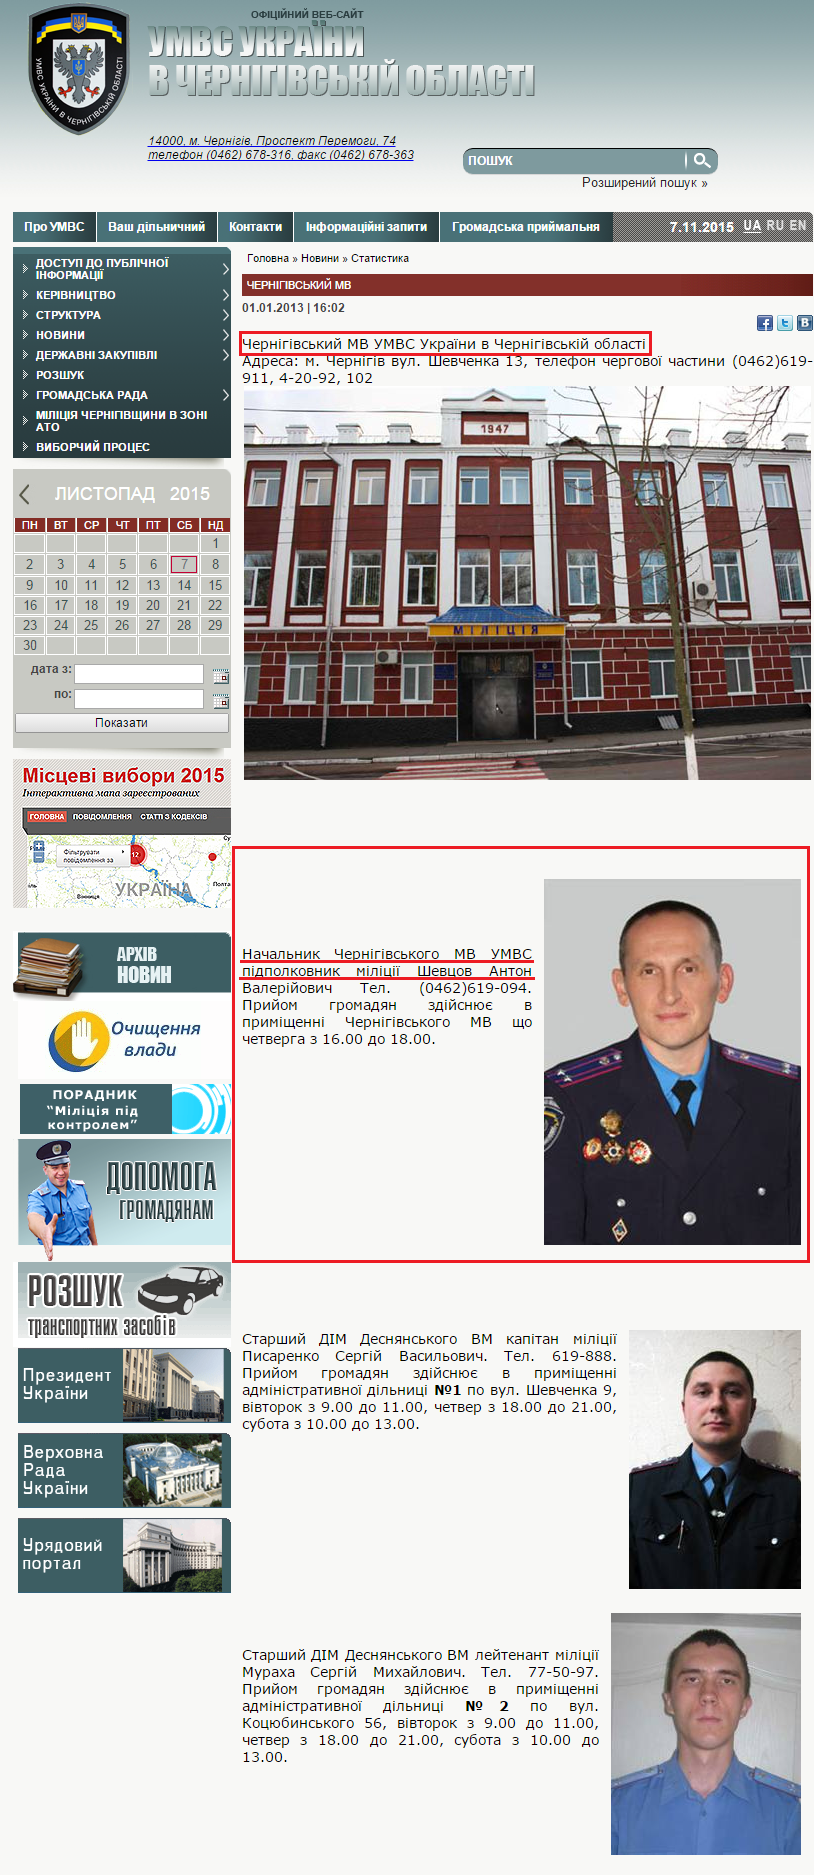 http://www.mvs.gov.ua/mvs/control/chernihiv/uk/publish/article/81712